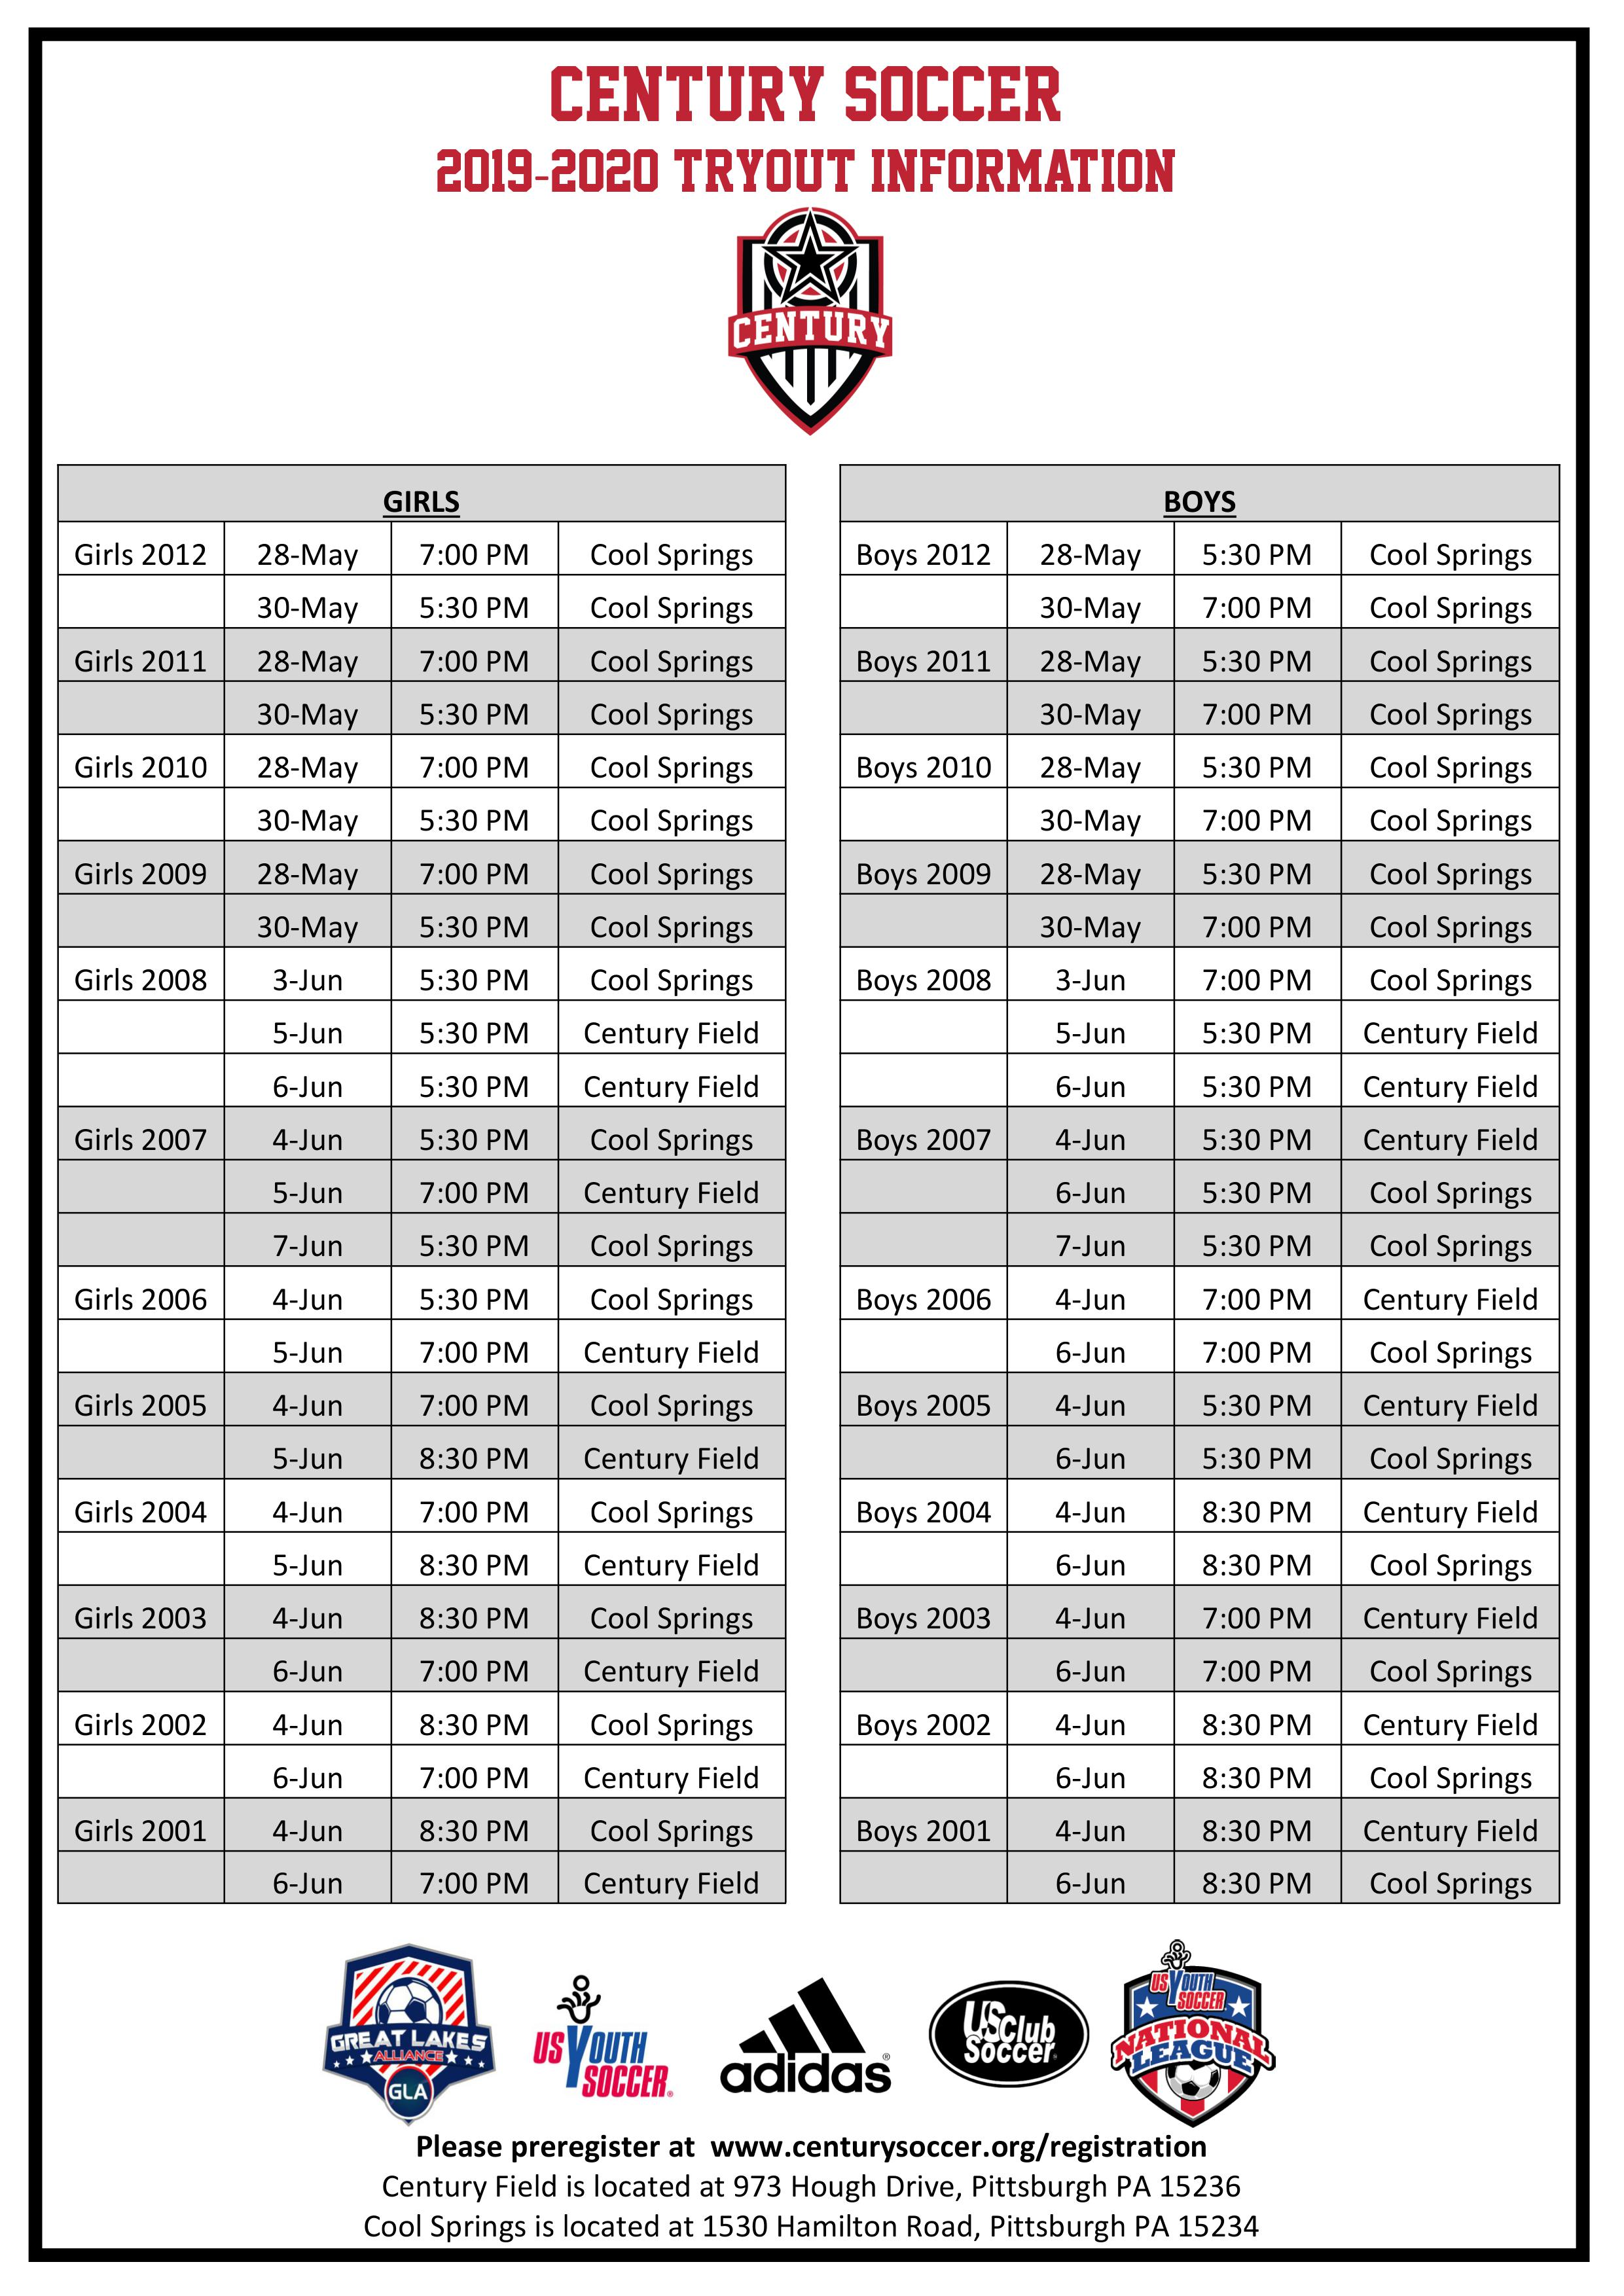 865bd29d7 Century South Tryout Information